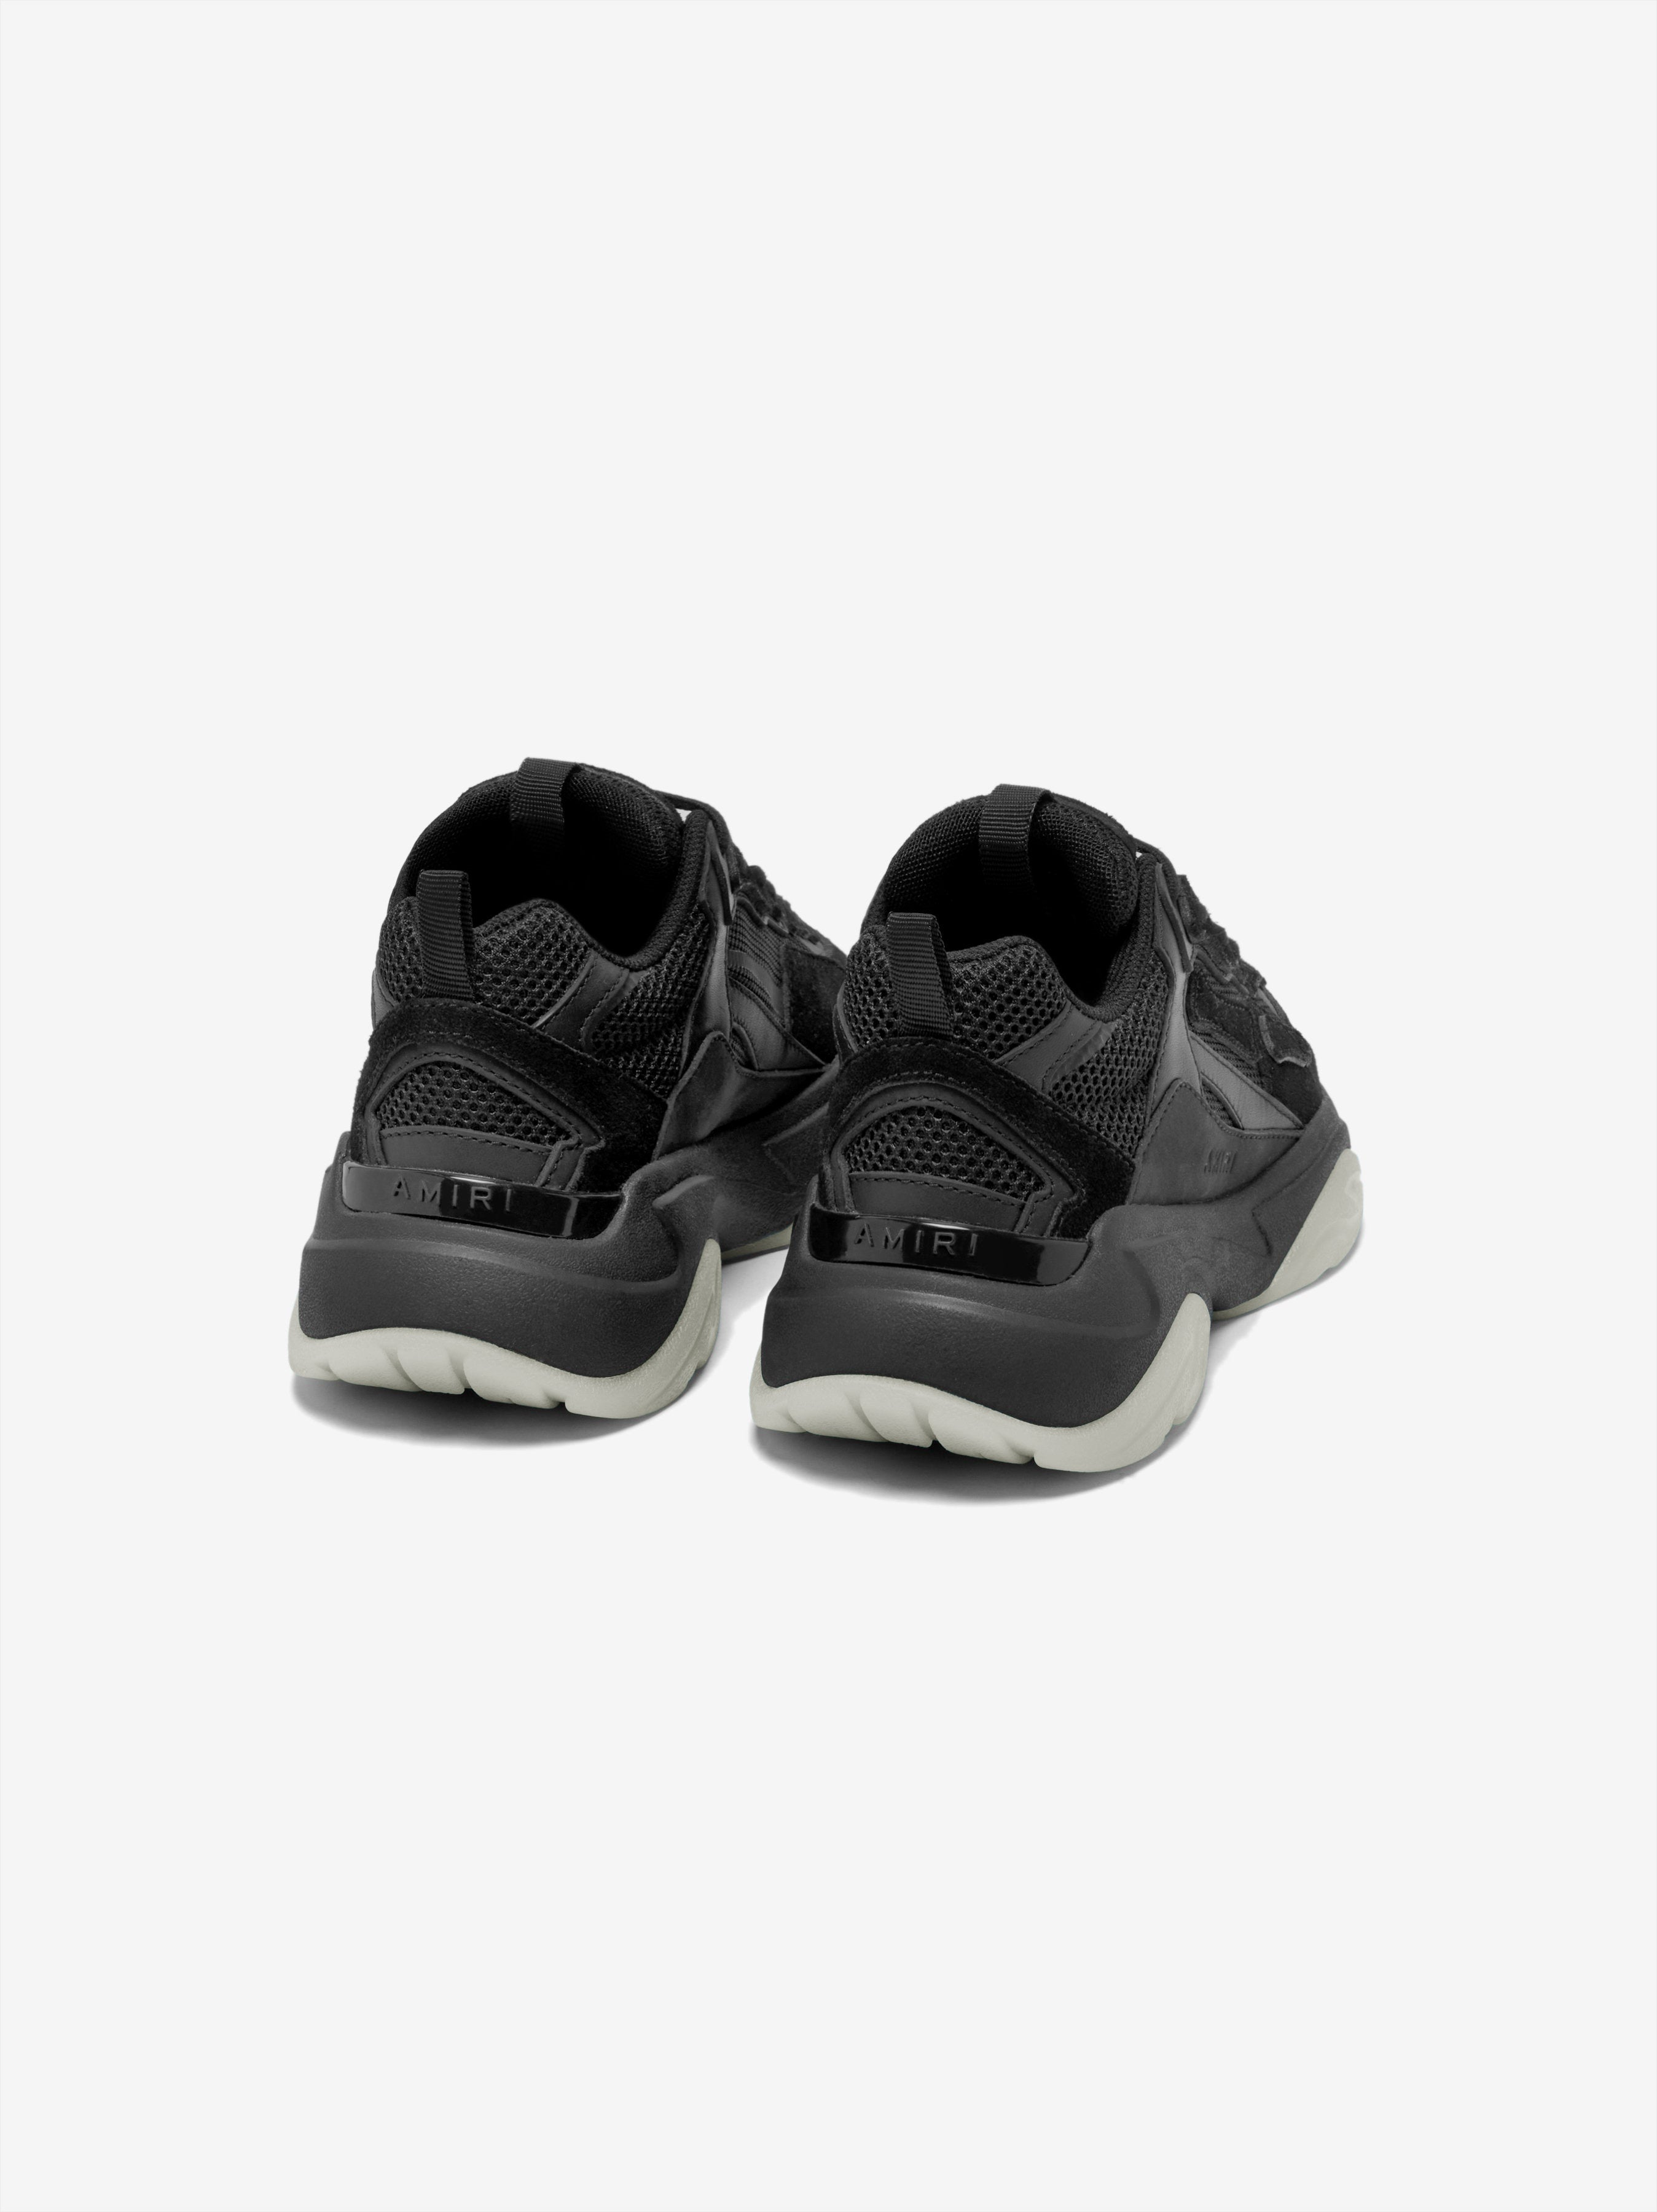 bone-runner-black-black-image-4